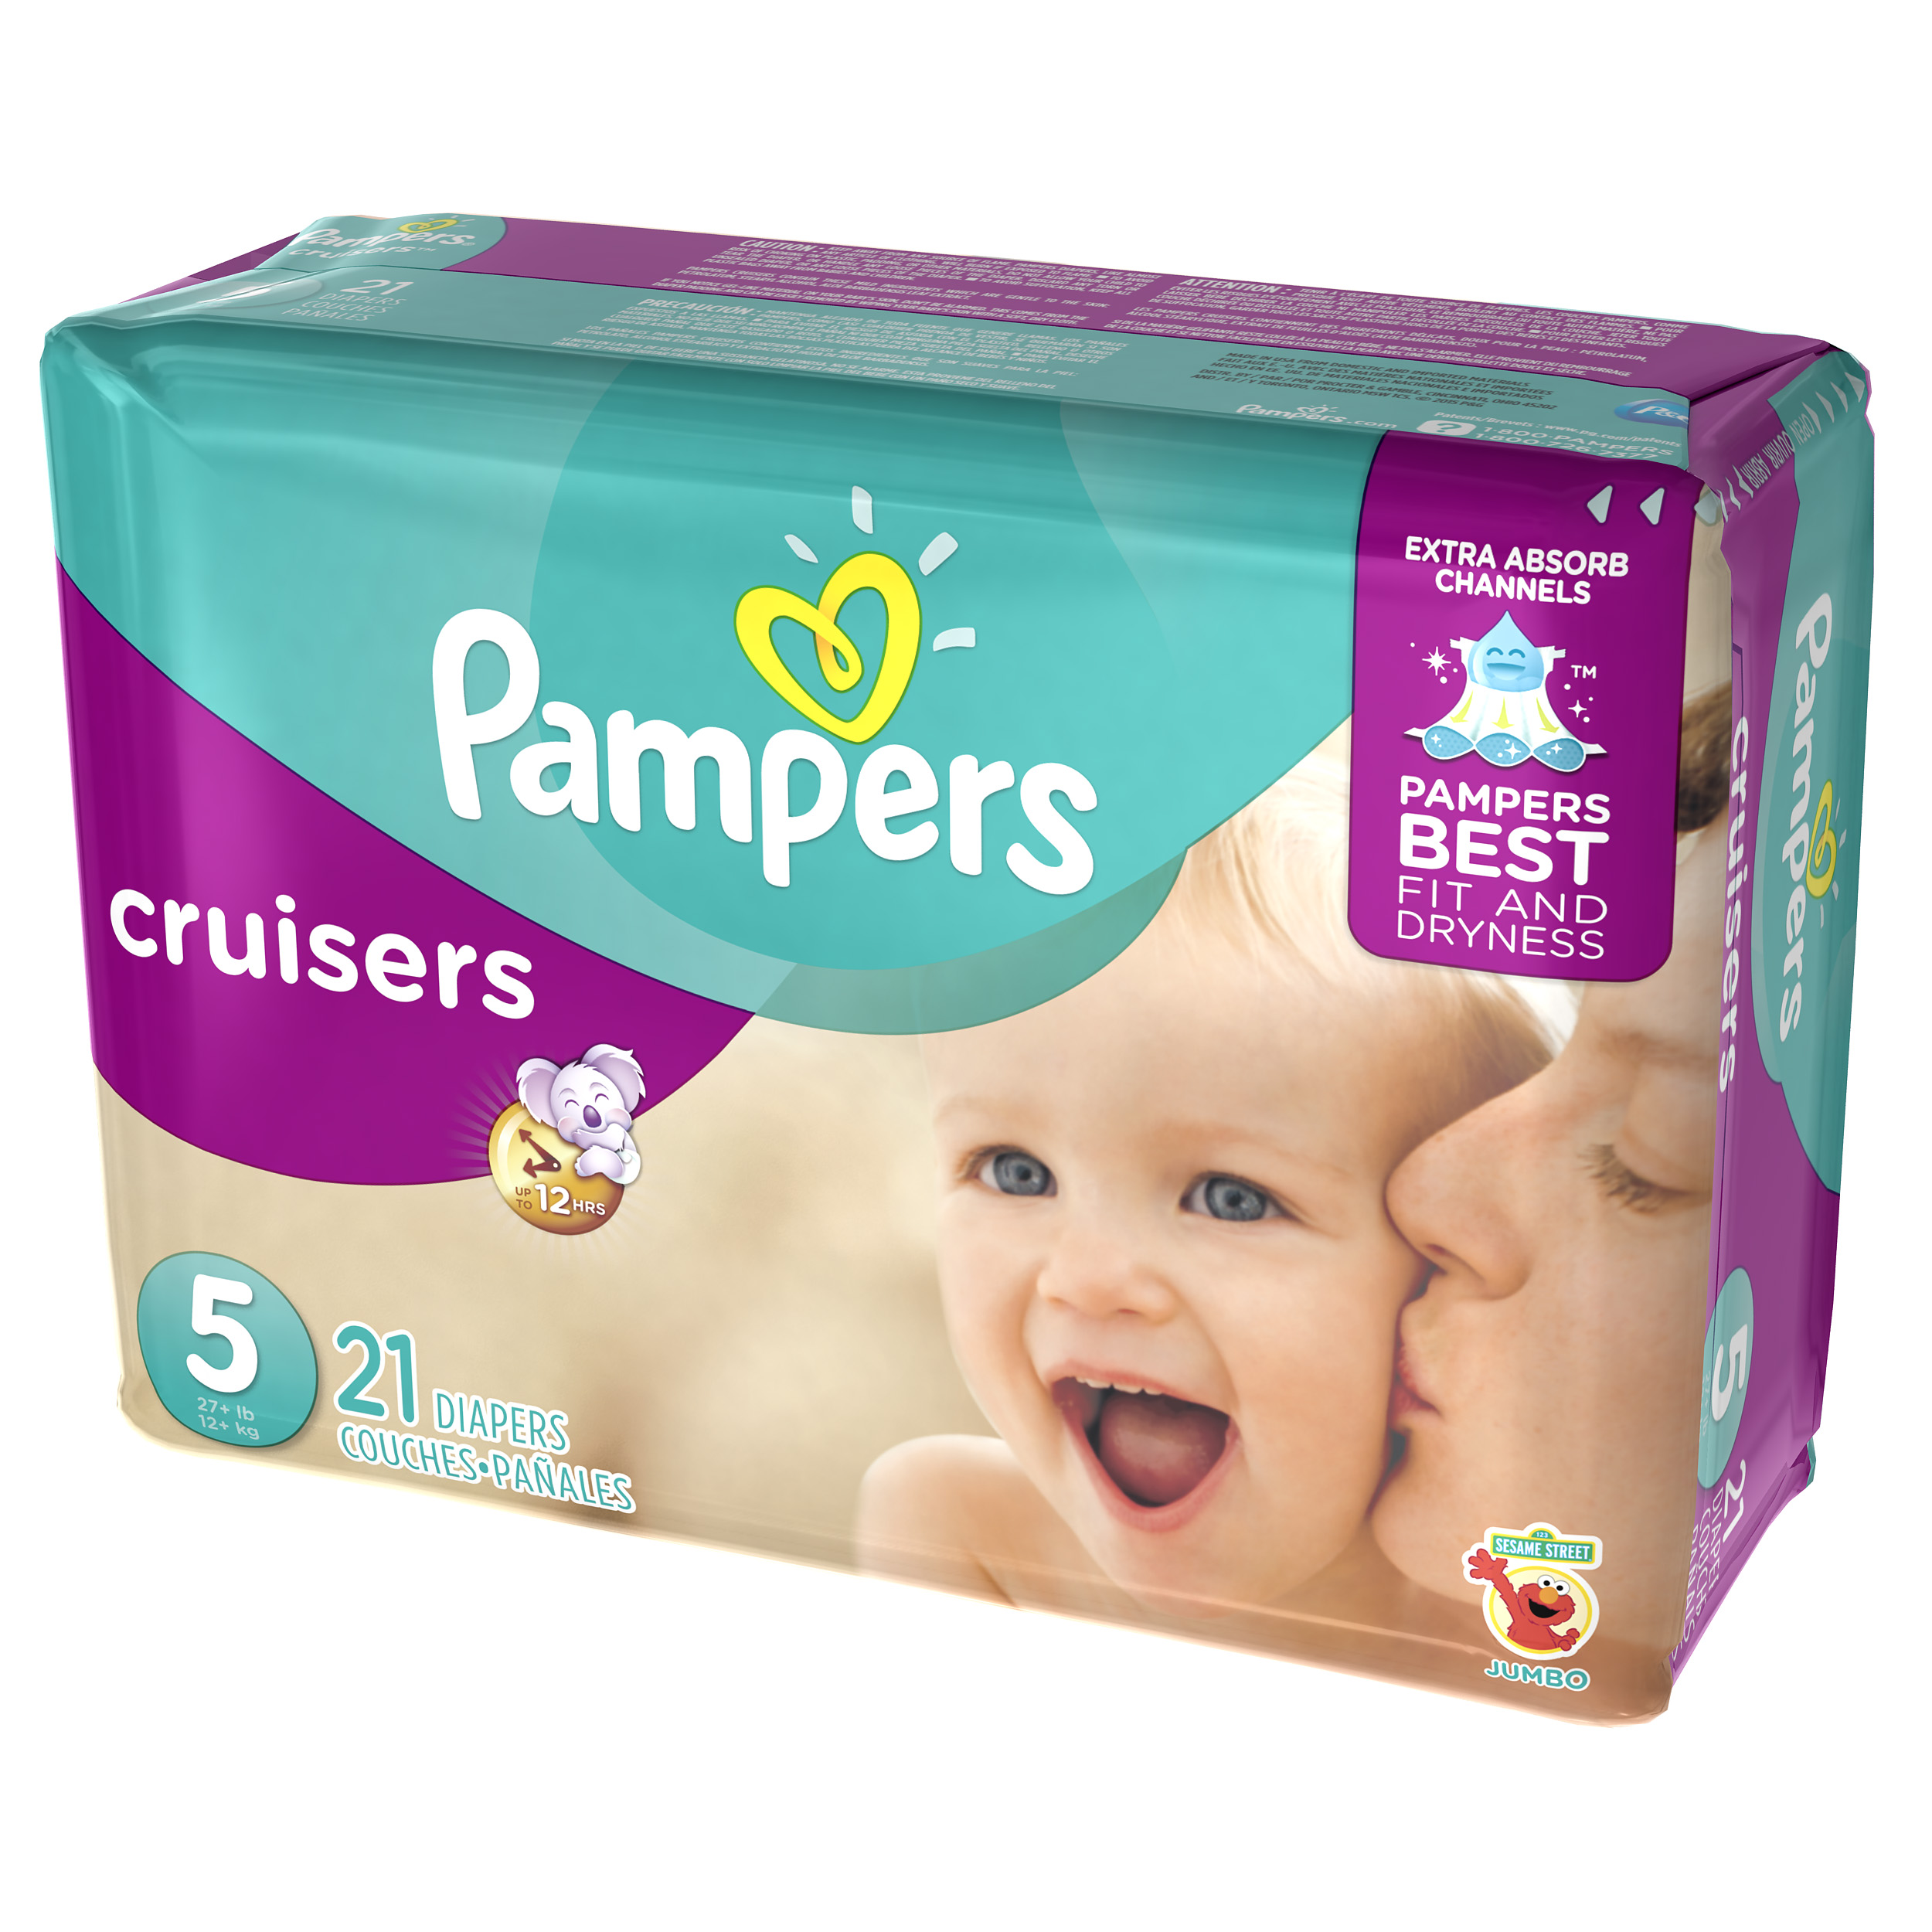 Pampers Cruisers Diapers Size 5 21 count